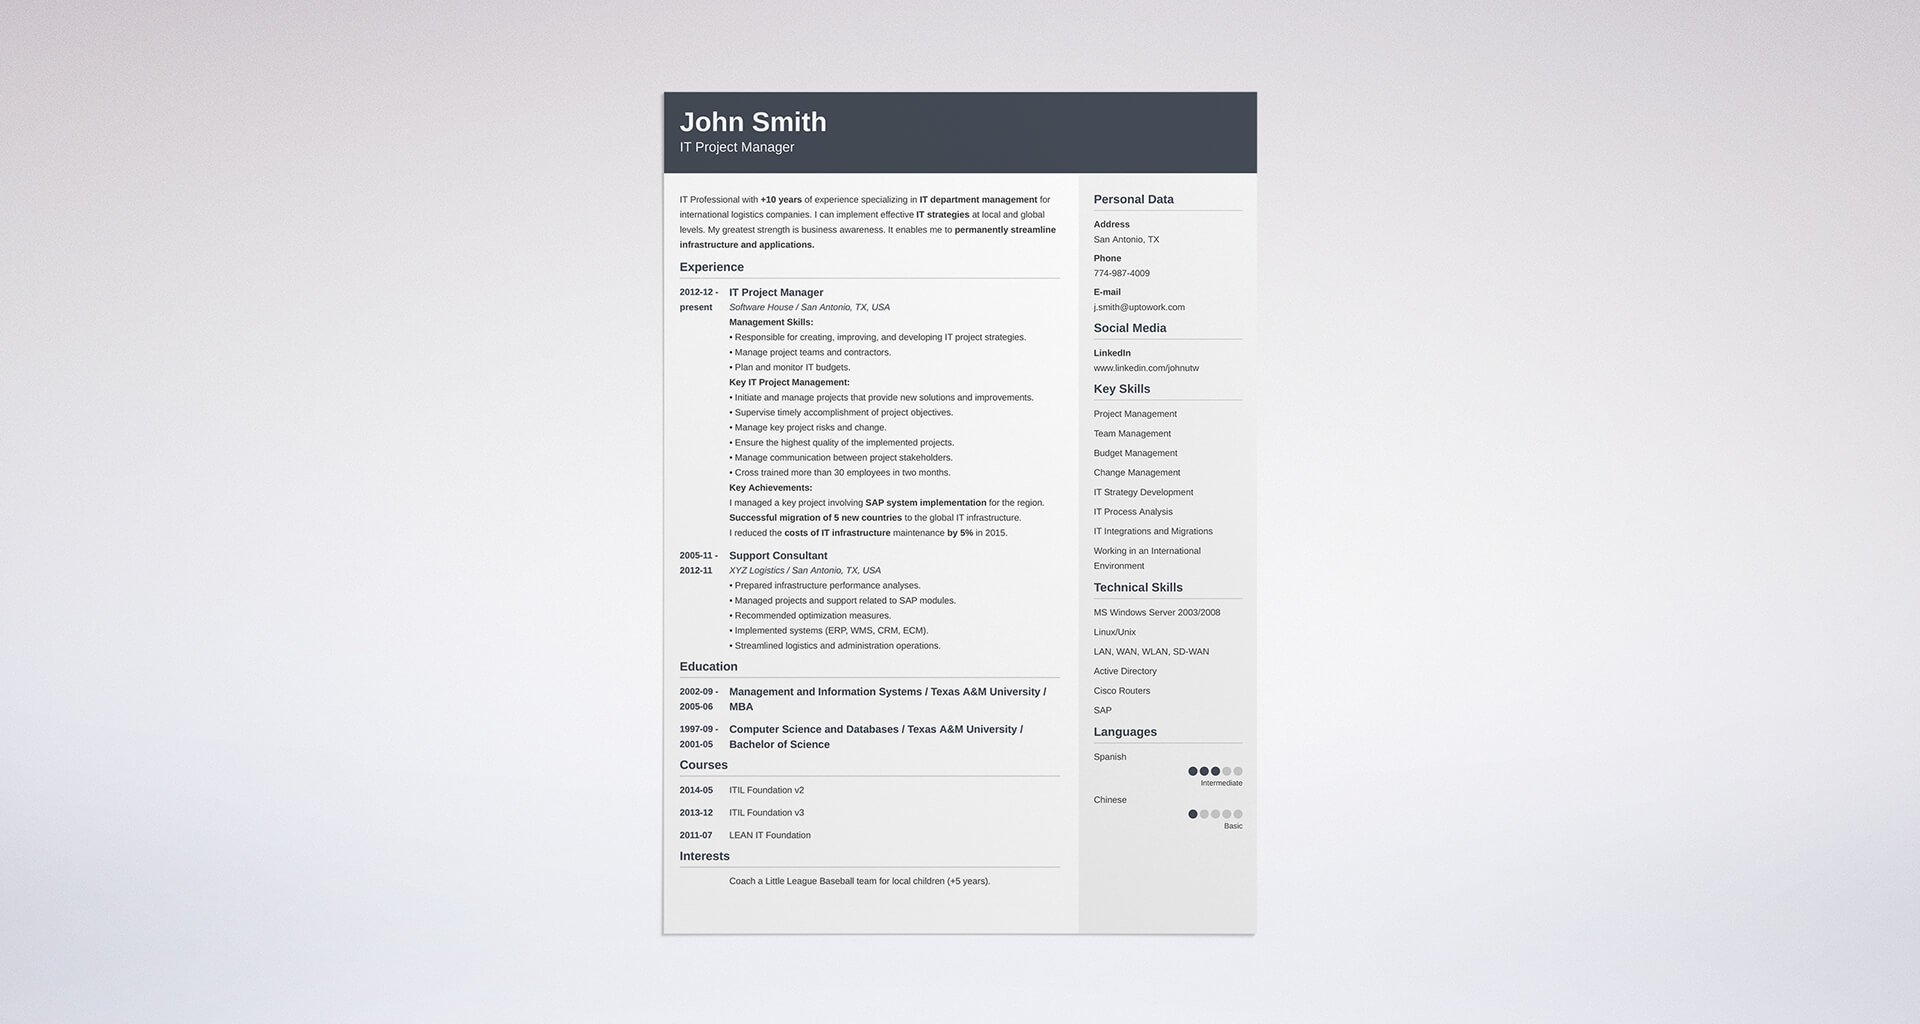 resume formats pick the best one in 3 steps examples templates - Best Formats For Resumes